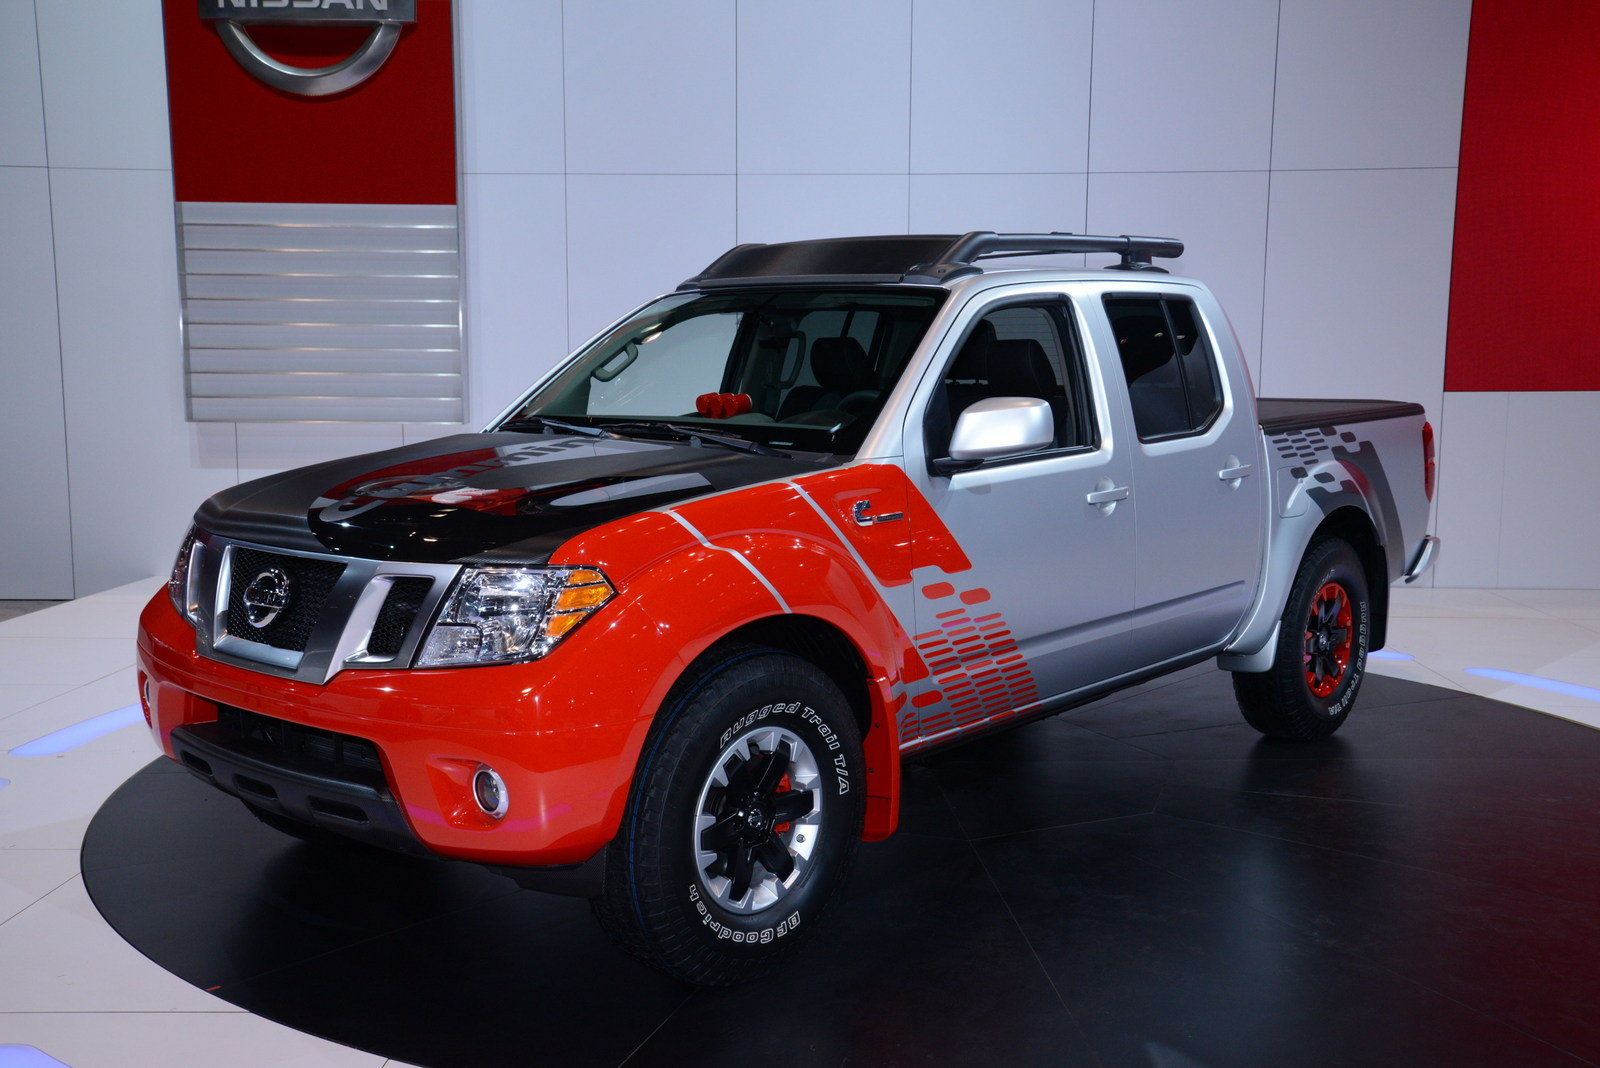 2015 nissan frontier diesel runner powered by cummins picture 541183 car review top speed. Black Bedroom Furniture Sets. Home Design Ideas